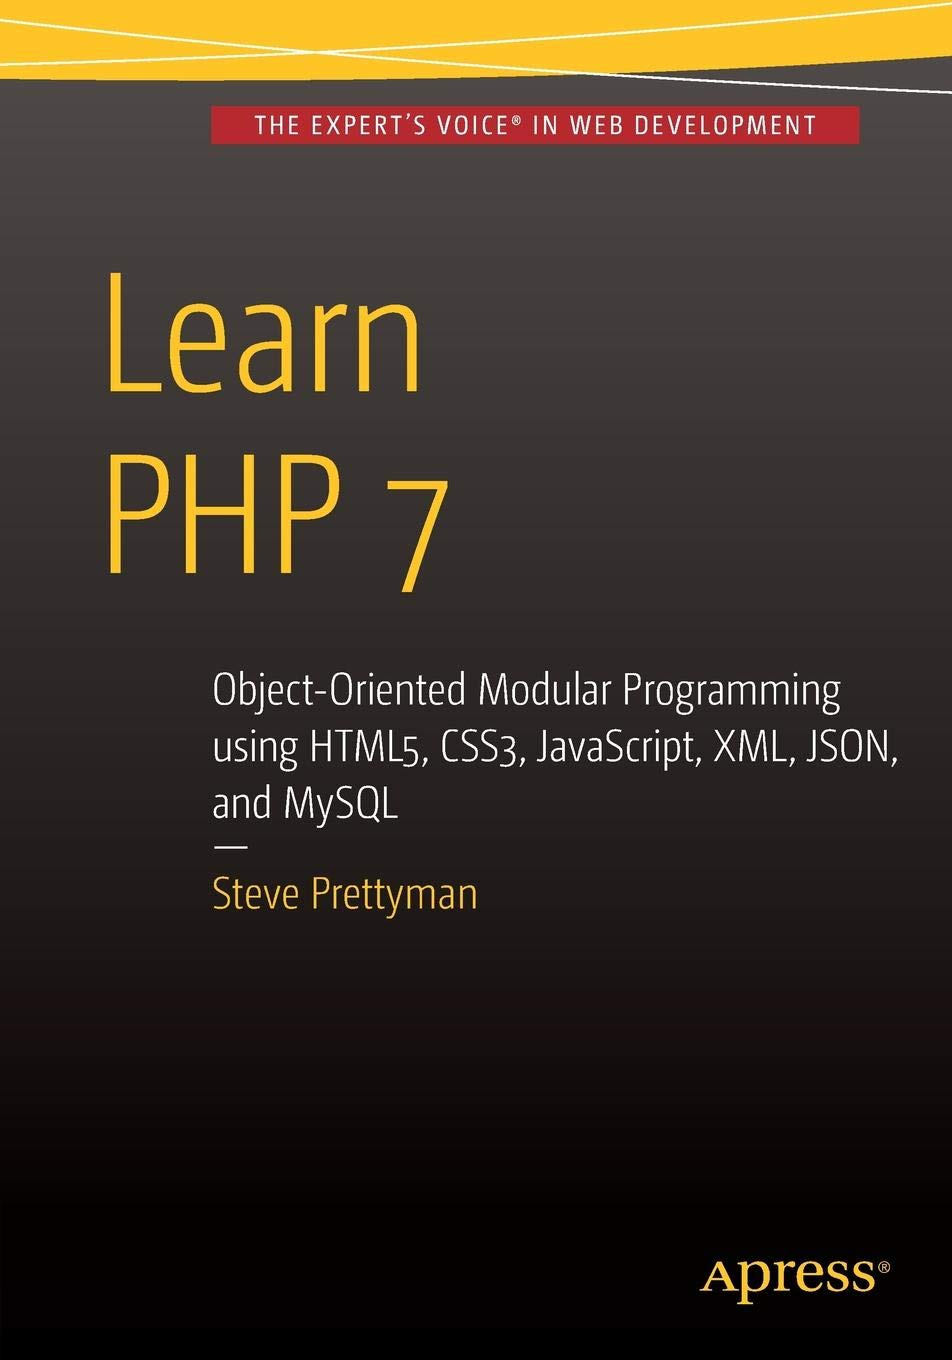 Learn PHP 7: Object Oriented Modular Programming using HTML5, CSS3, JavaScript, XML, JSON, and MySQL: Amazon.es: Steve Prettyman: Libros en idiomas ...